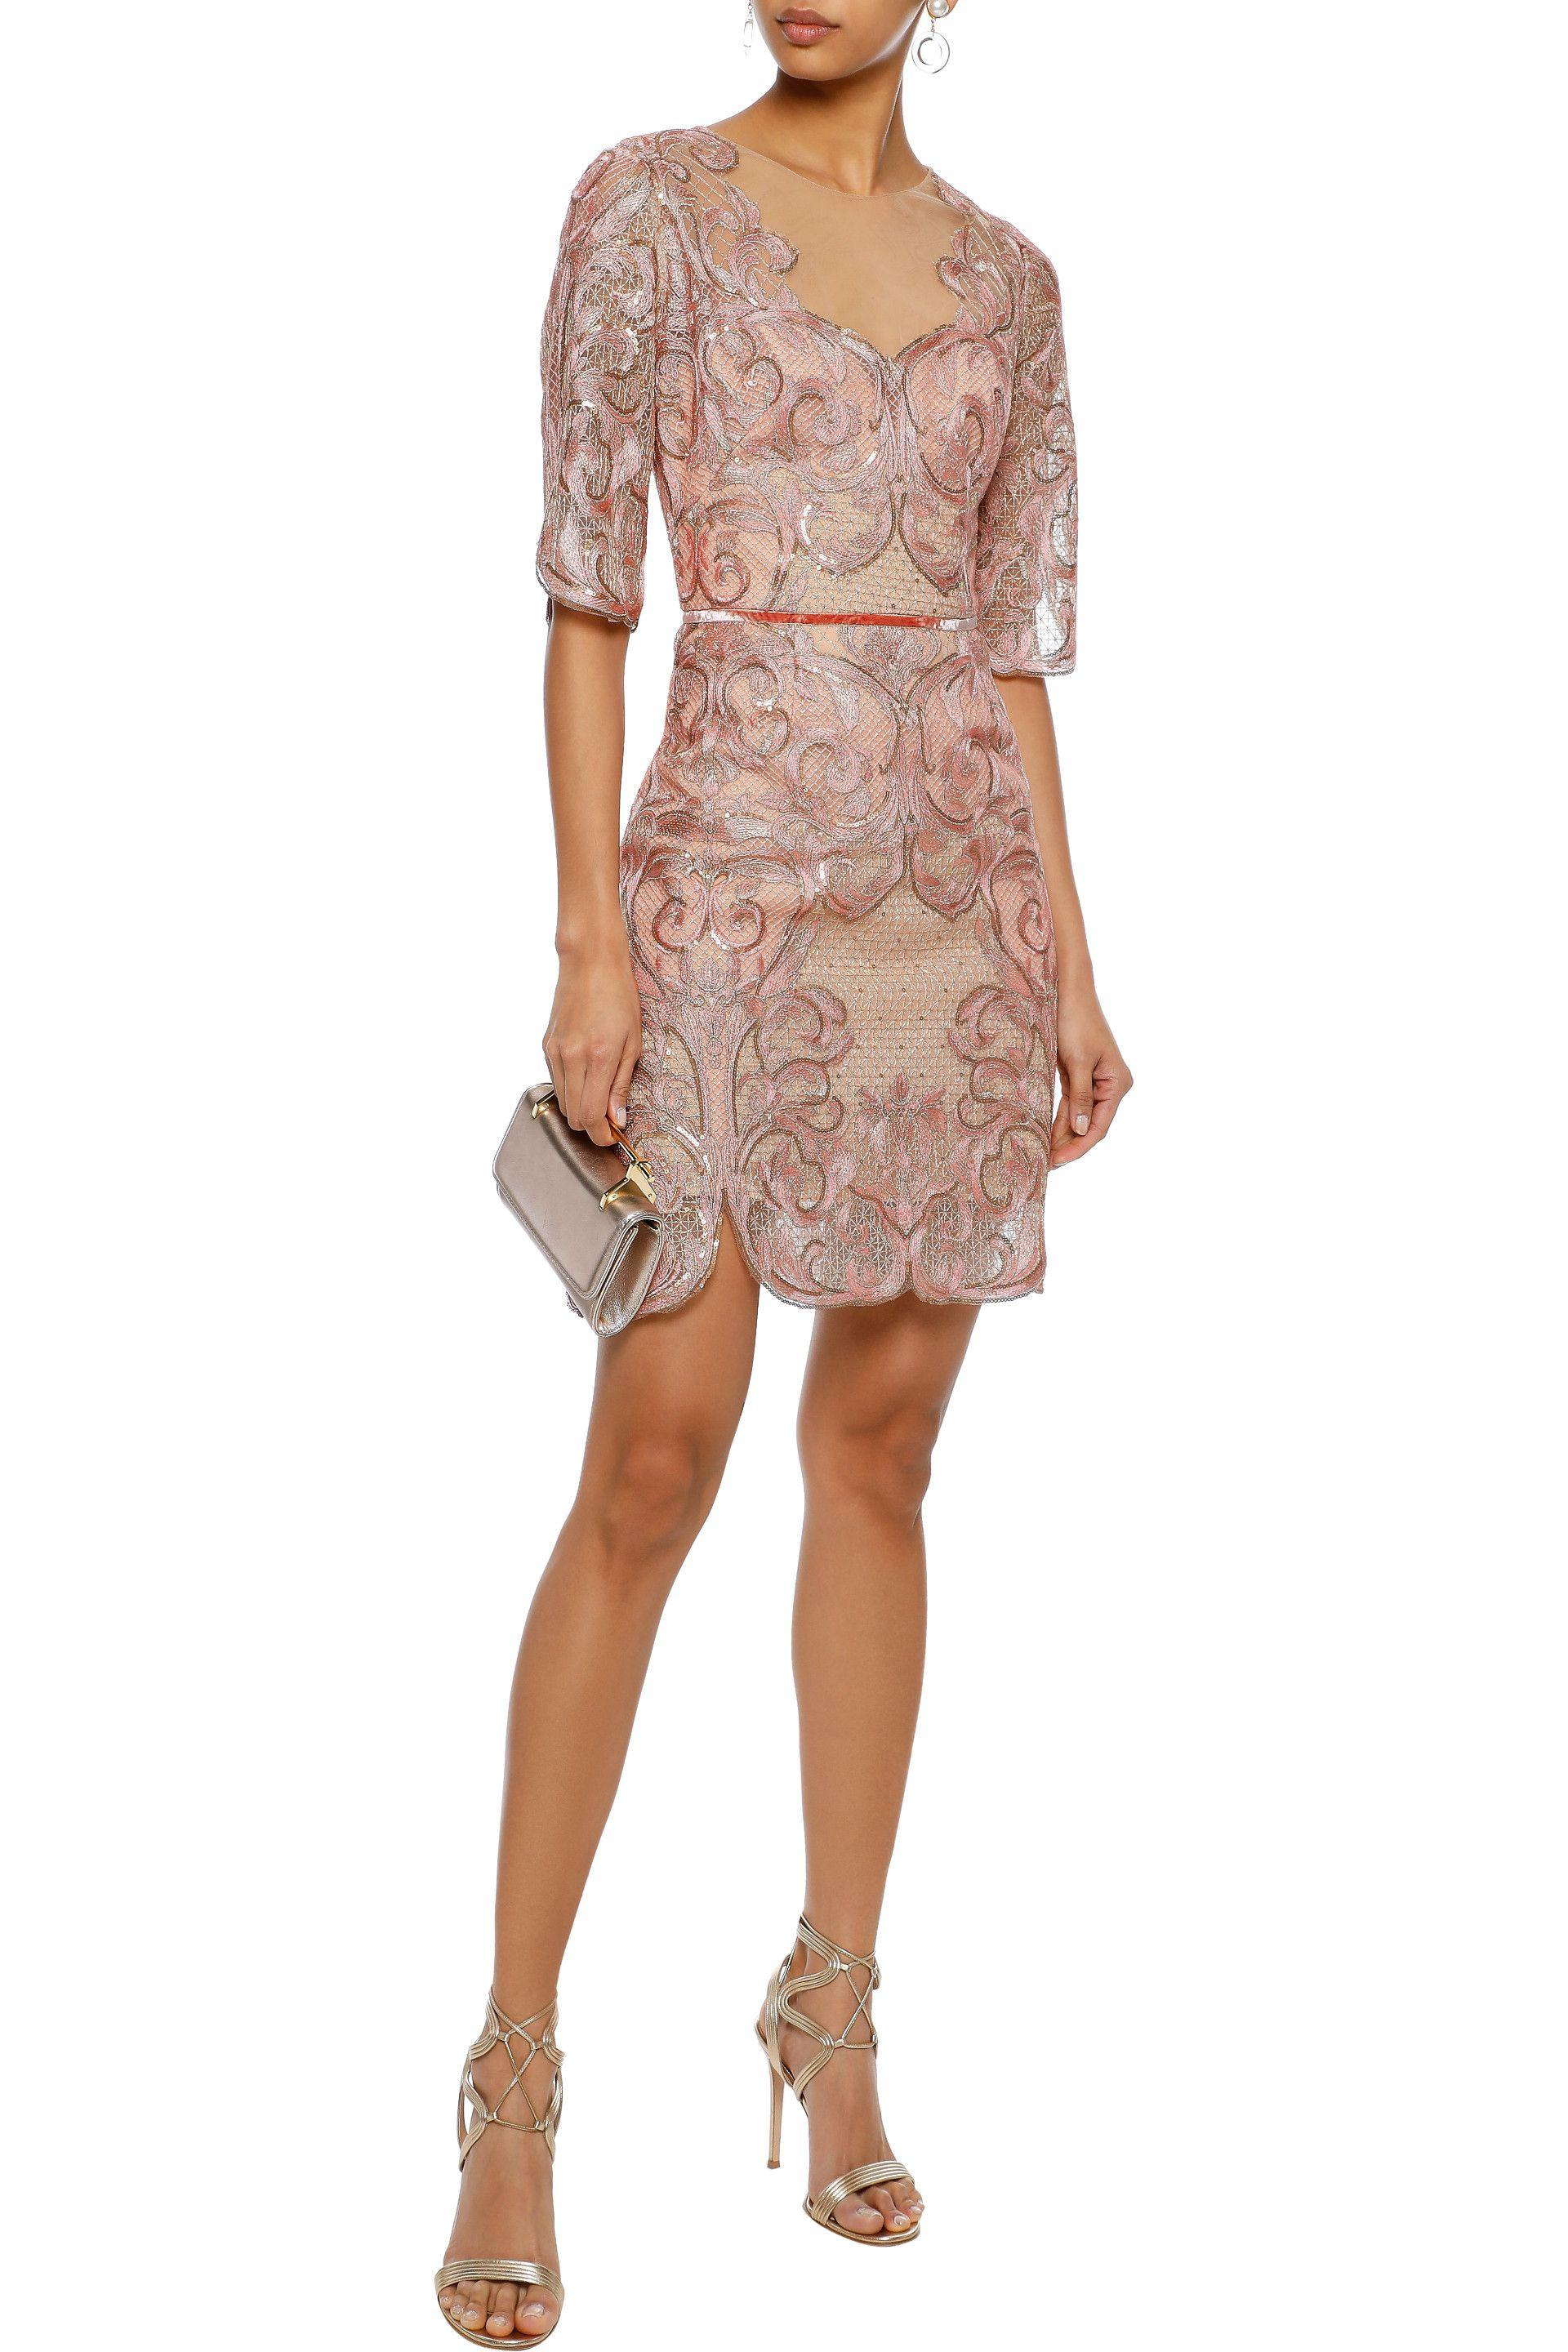 1e8ac7b9ef Marchesa notte - Pink Woman Velvet-trimmed Embellished Tulle Mini Dress  Blush - Lyst. View fullscreen